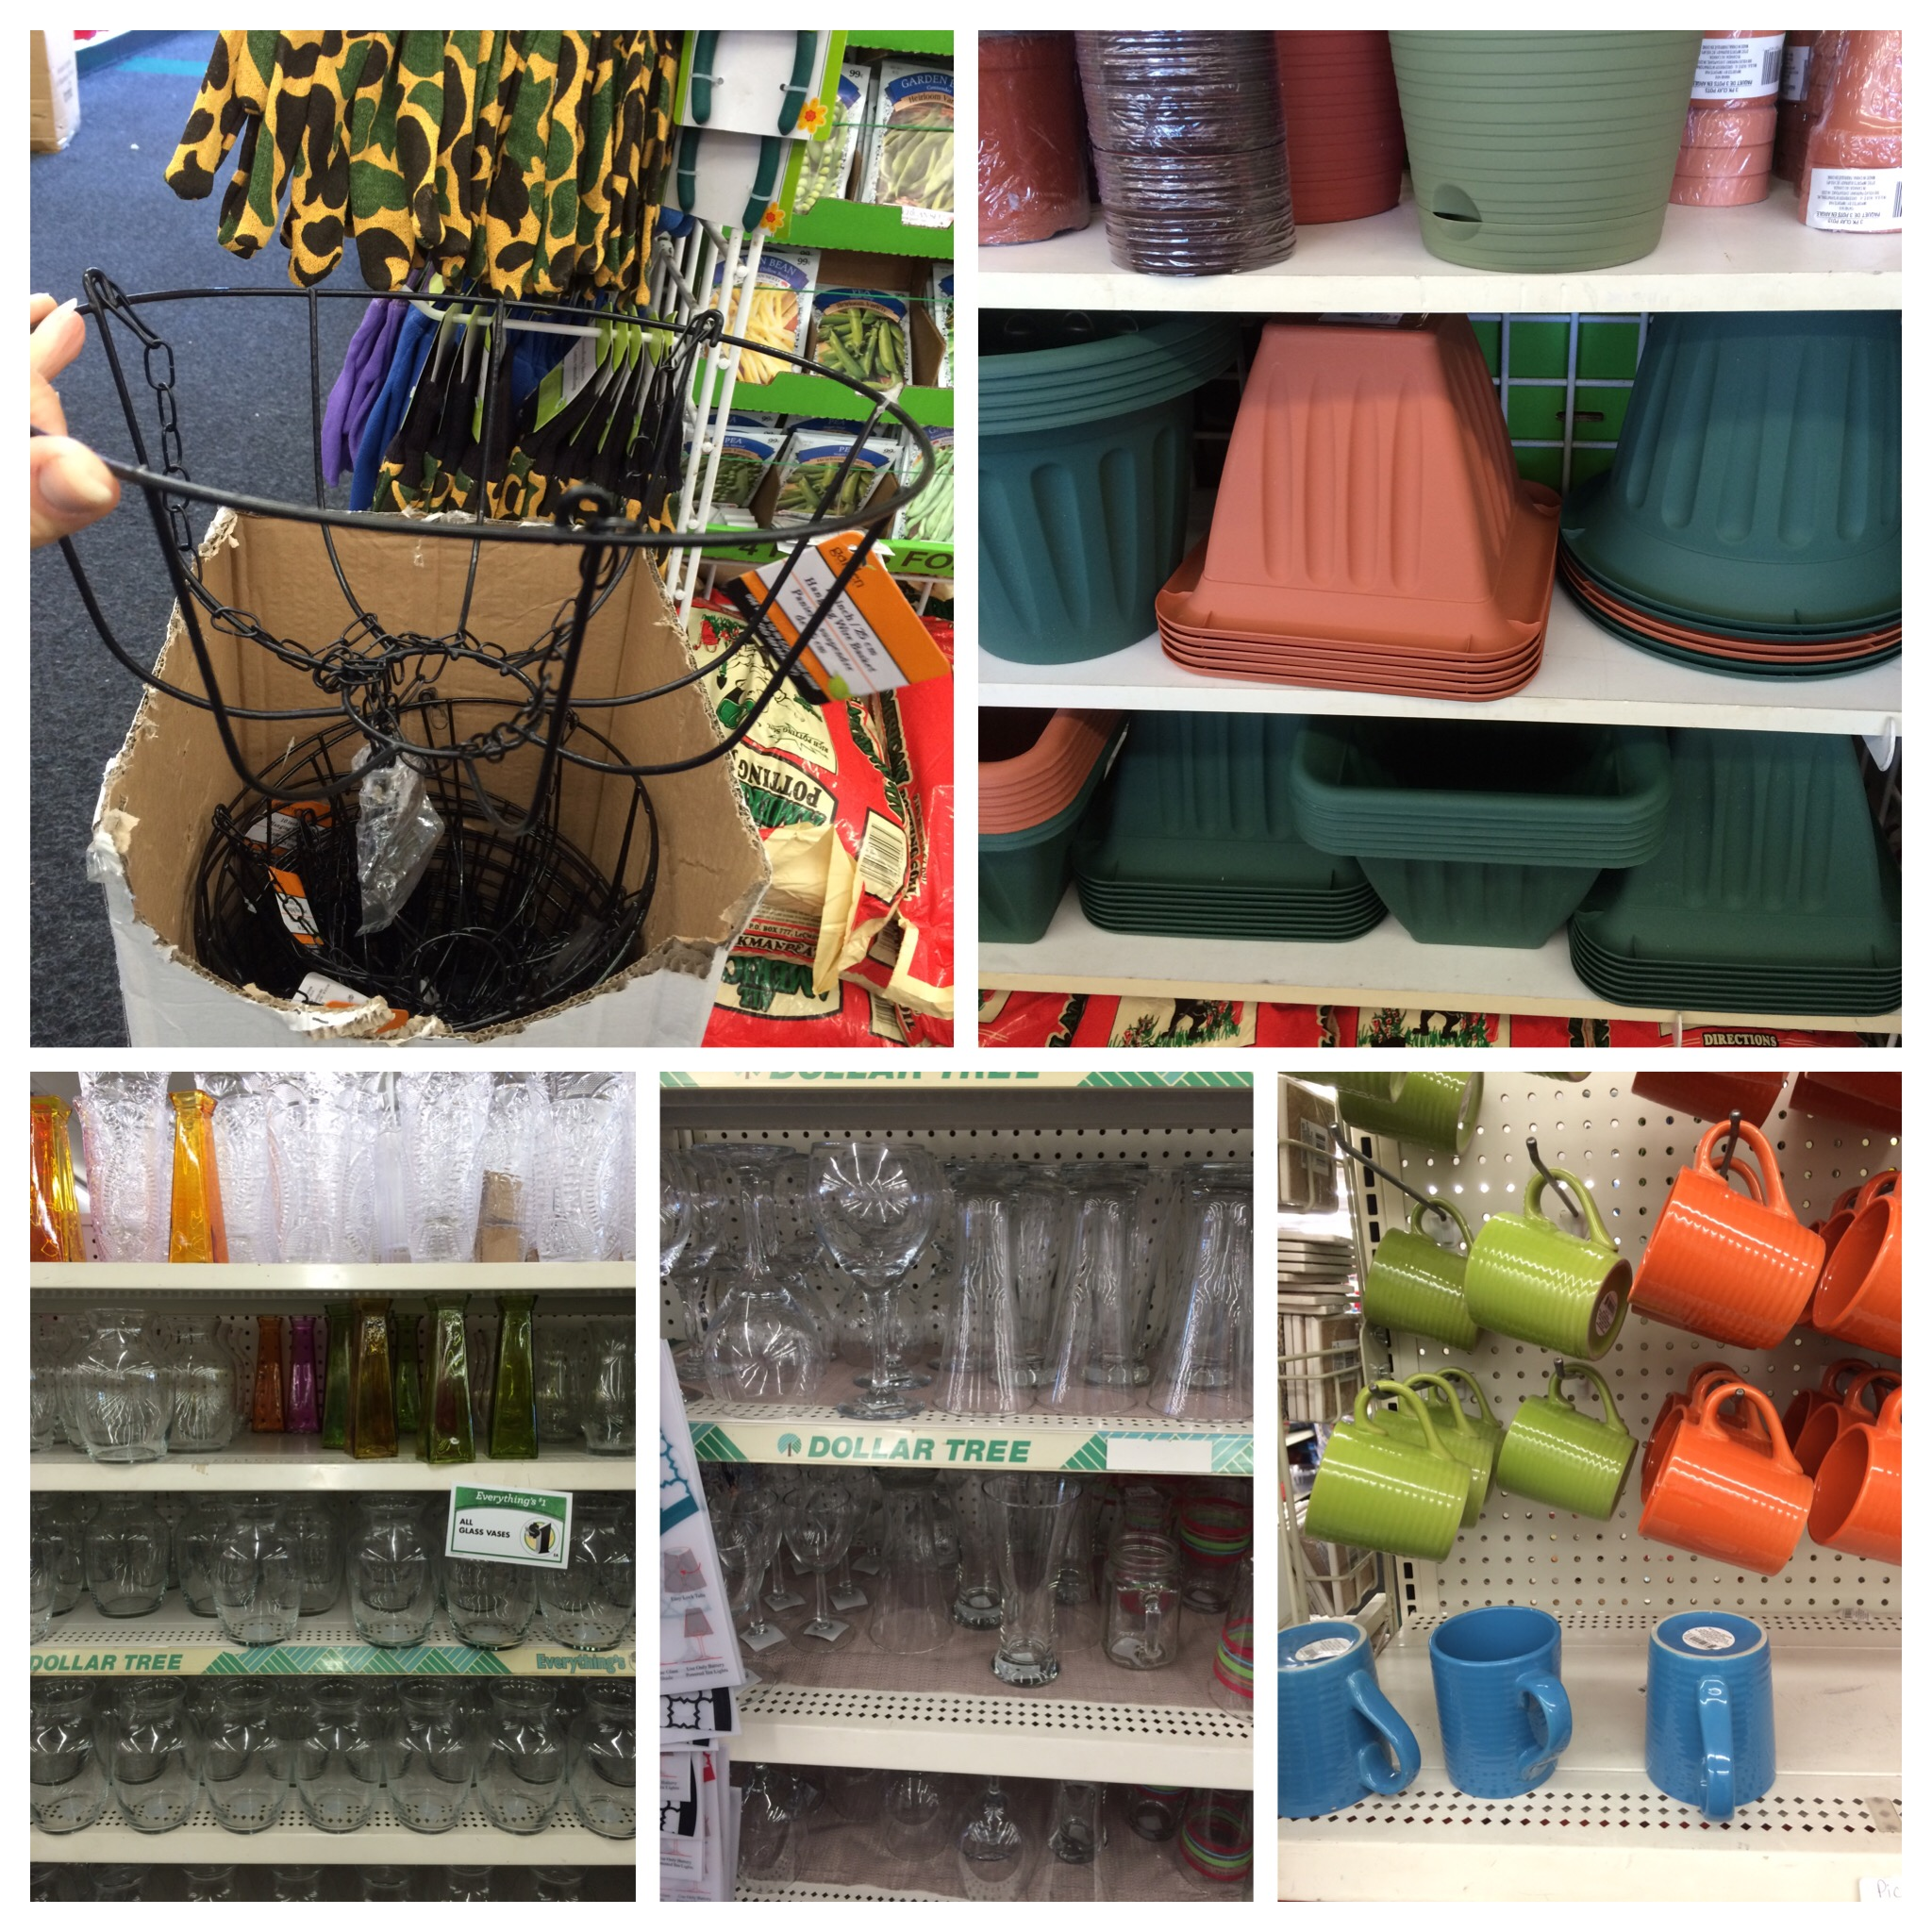 I Thought It Would Be Cool To Run Into The Dollar Tree This Week Since Awesome 25 Day Diy Projects Laurie Is Posting Are So Motivating